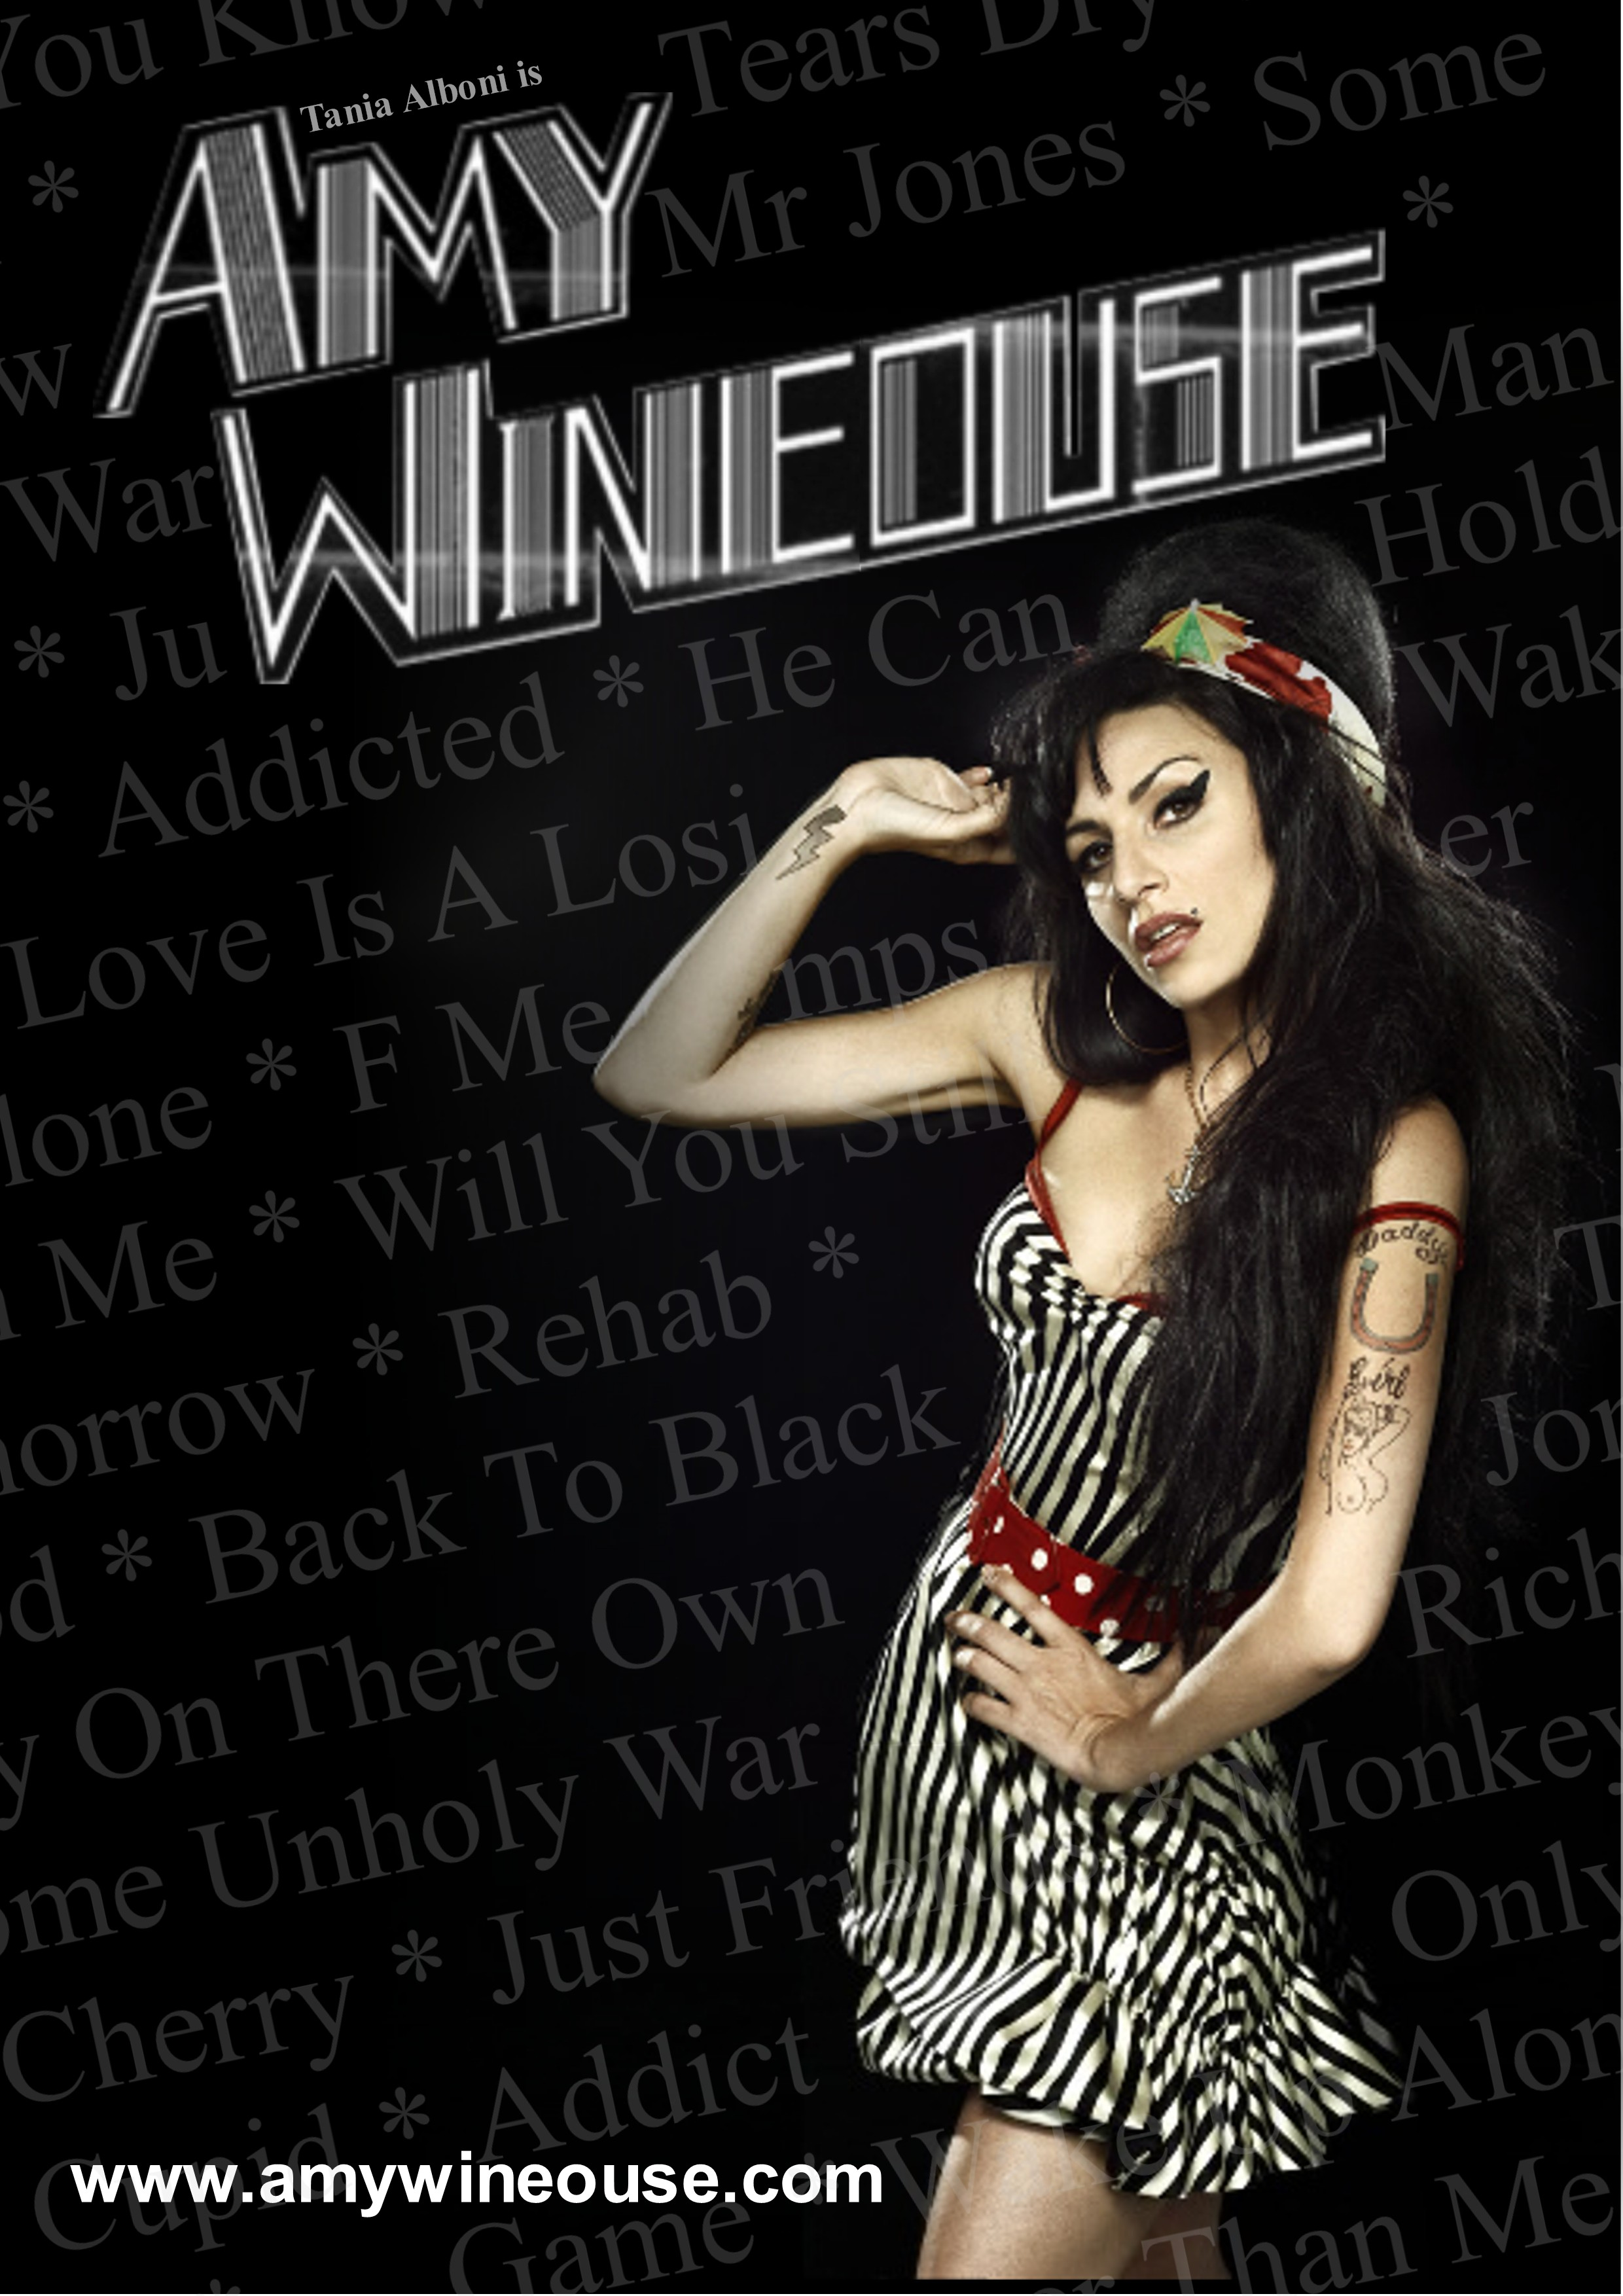 Tania as Amy Winehouse - Photo Album Amy Winehouse Live